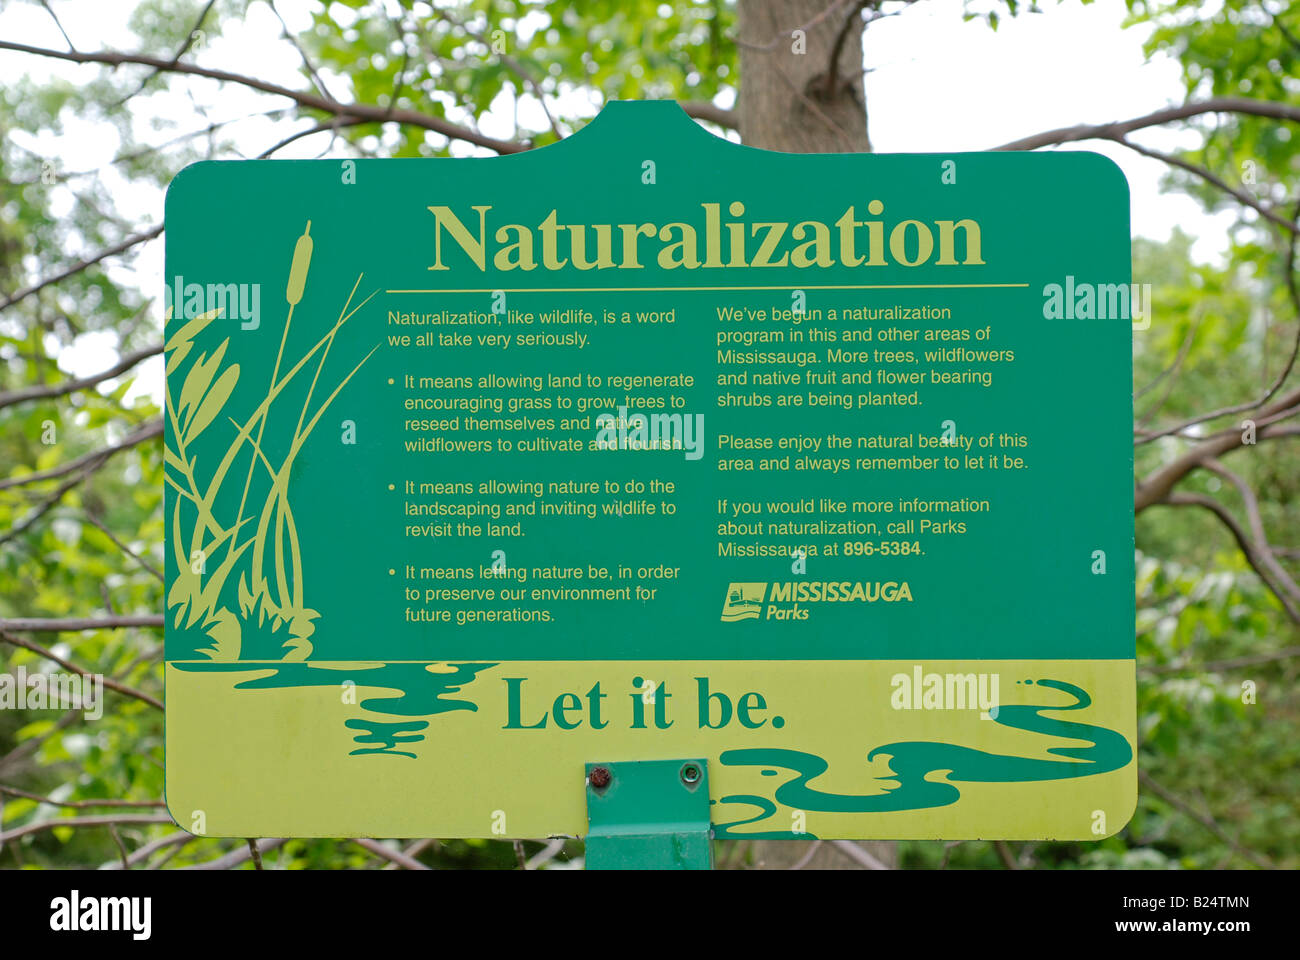 Naturalization Sign in a Mississauga Park - Stock Image